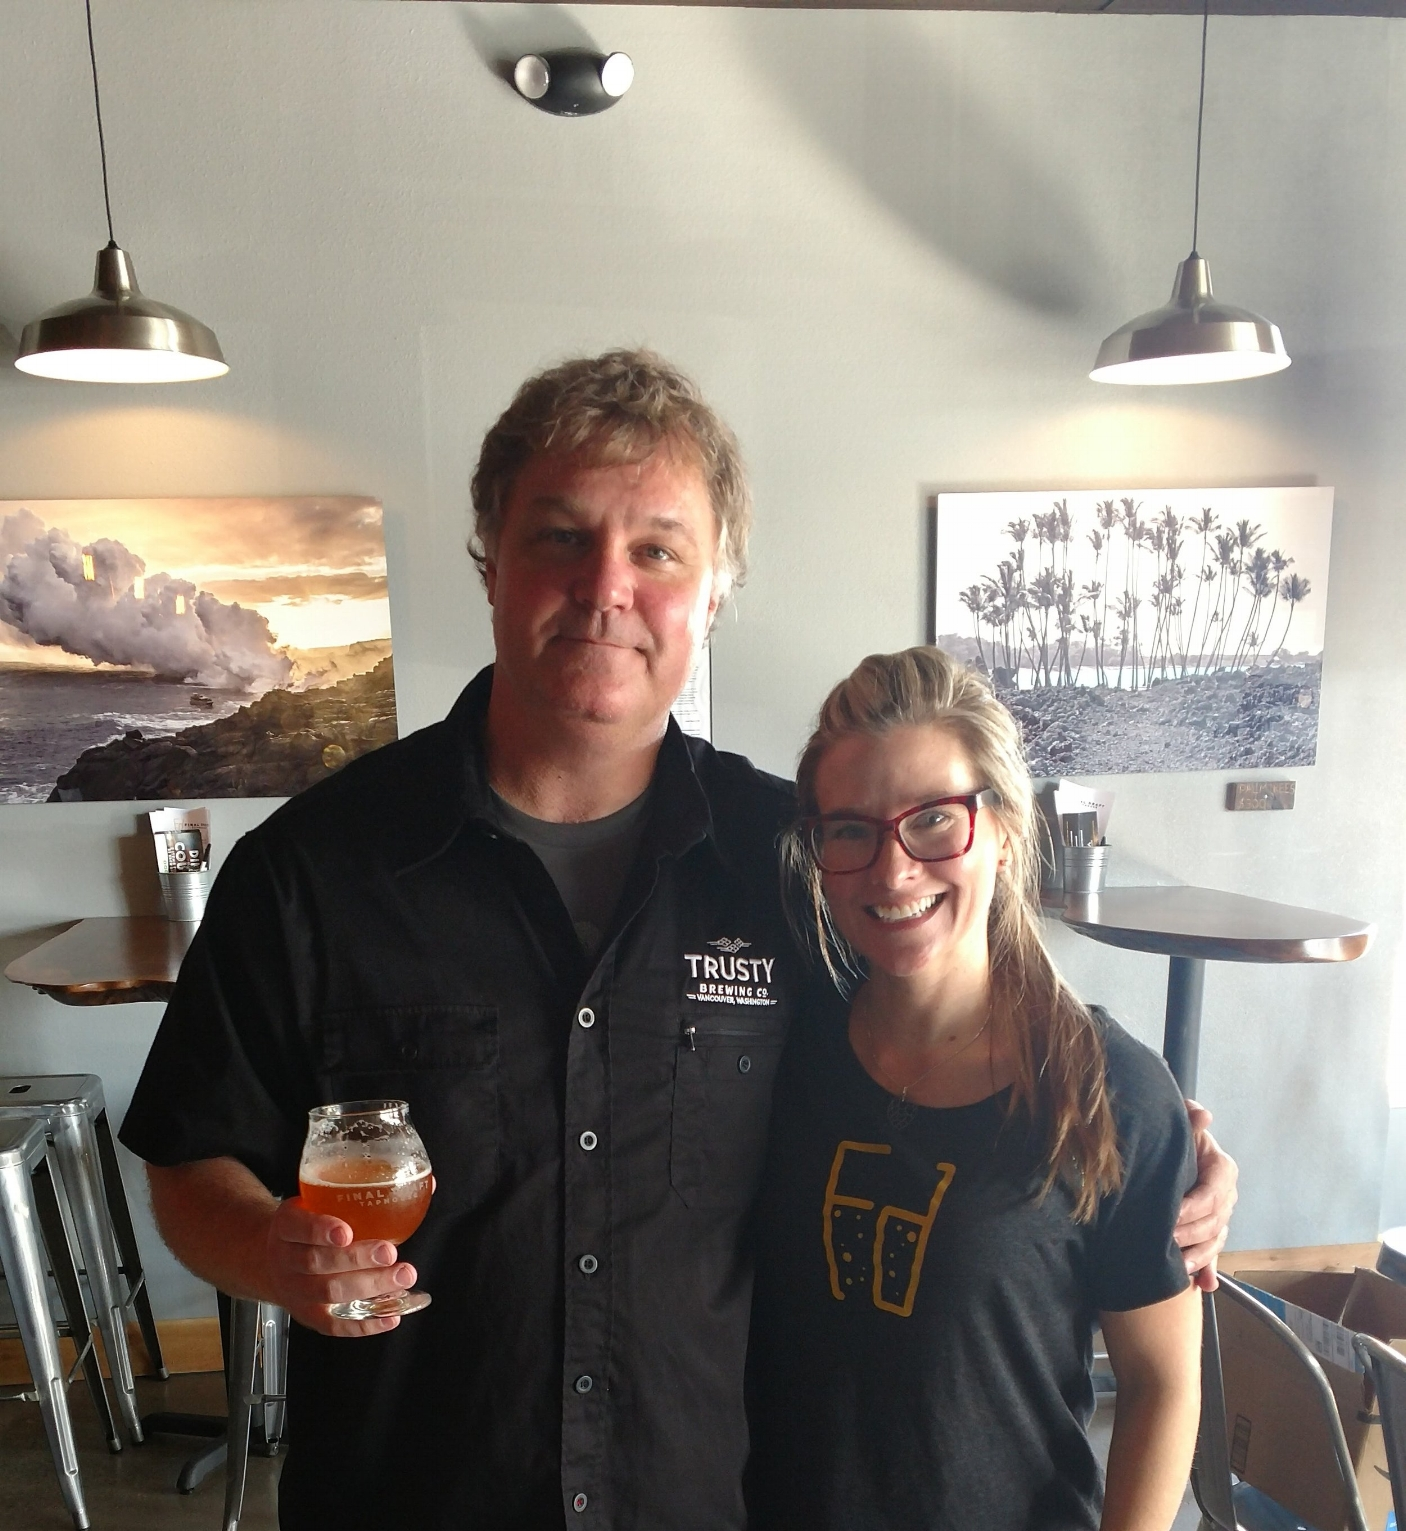 Brewers' Stories - Gary from Trusty Brewing